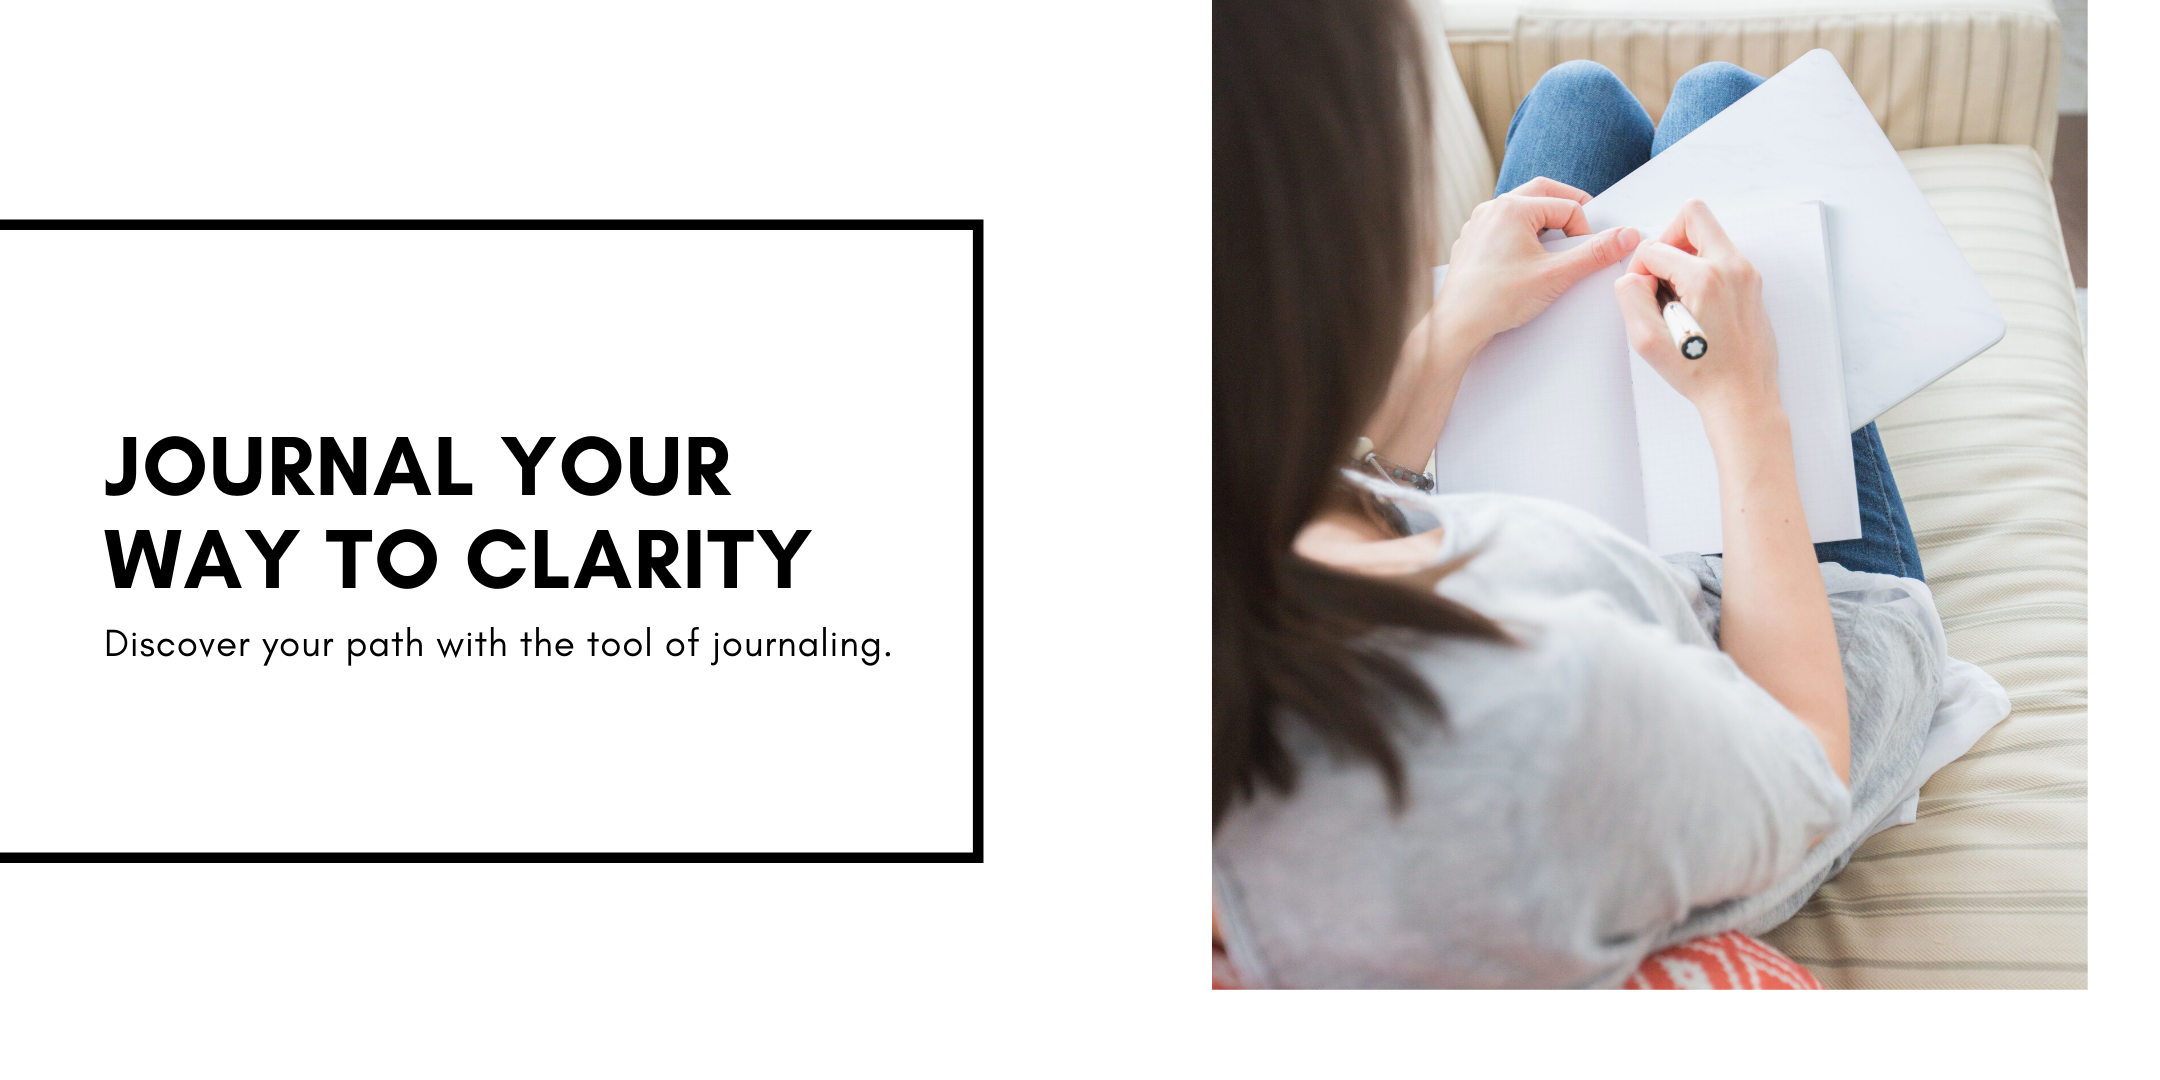 Journal Your Way To Clarity